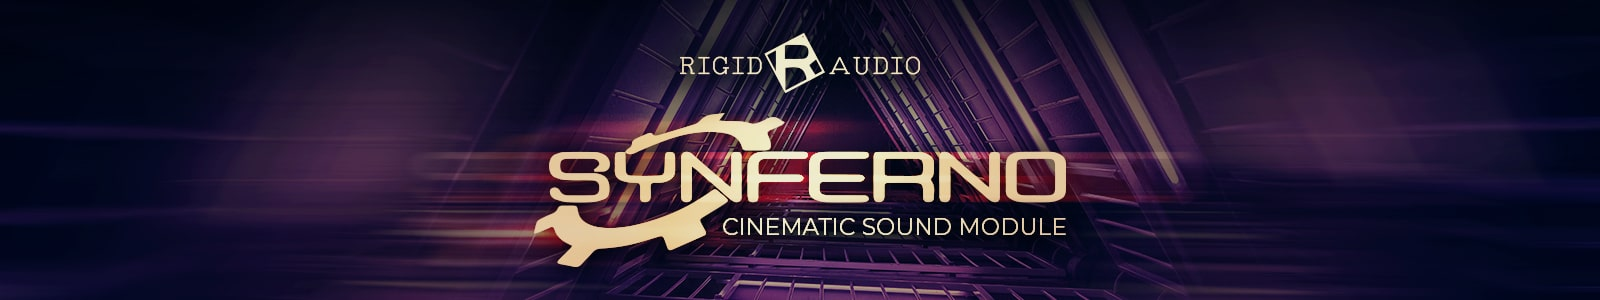 synferno by rigid audio